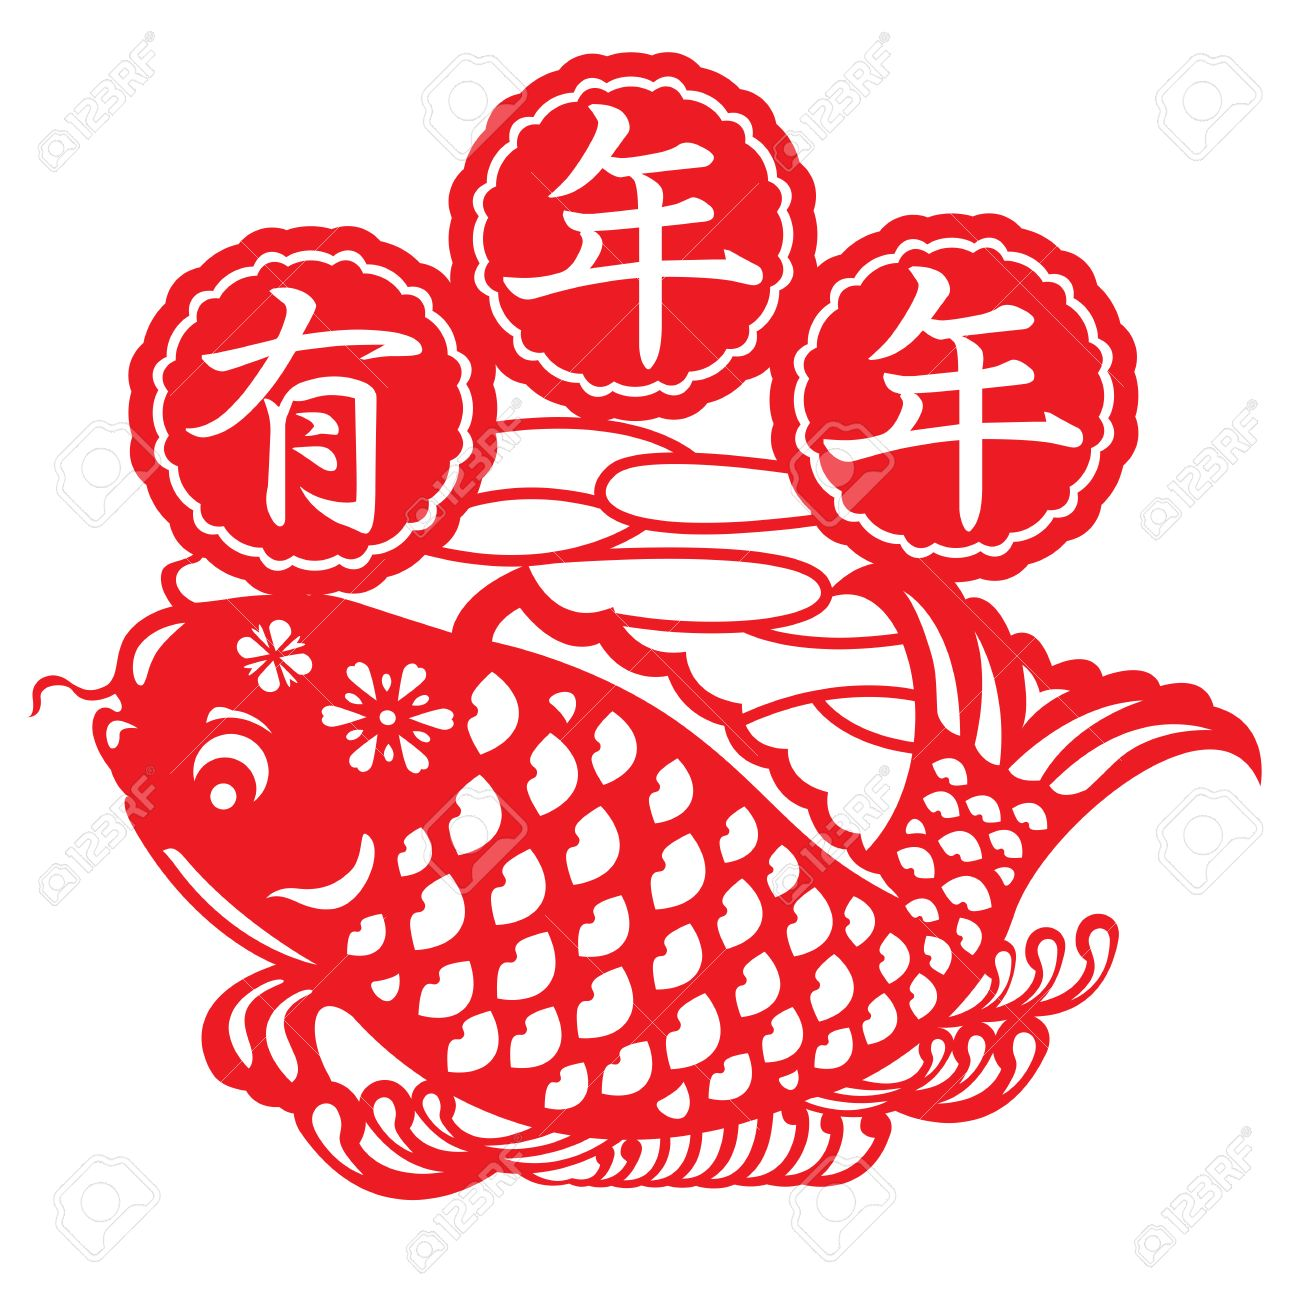 Chinese paper cut style new year lucky fish design illustration chinese paper cut style new year lucky fish design illustration stock vector 26049365 buycottarizona Gallery